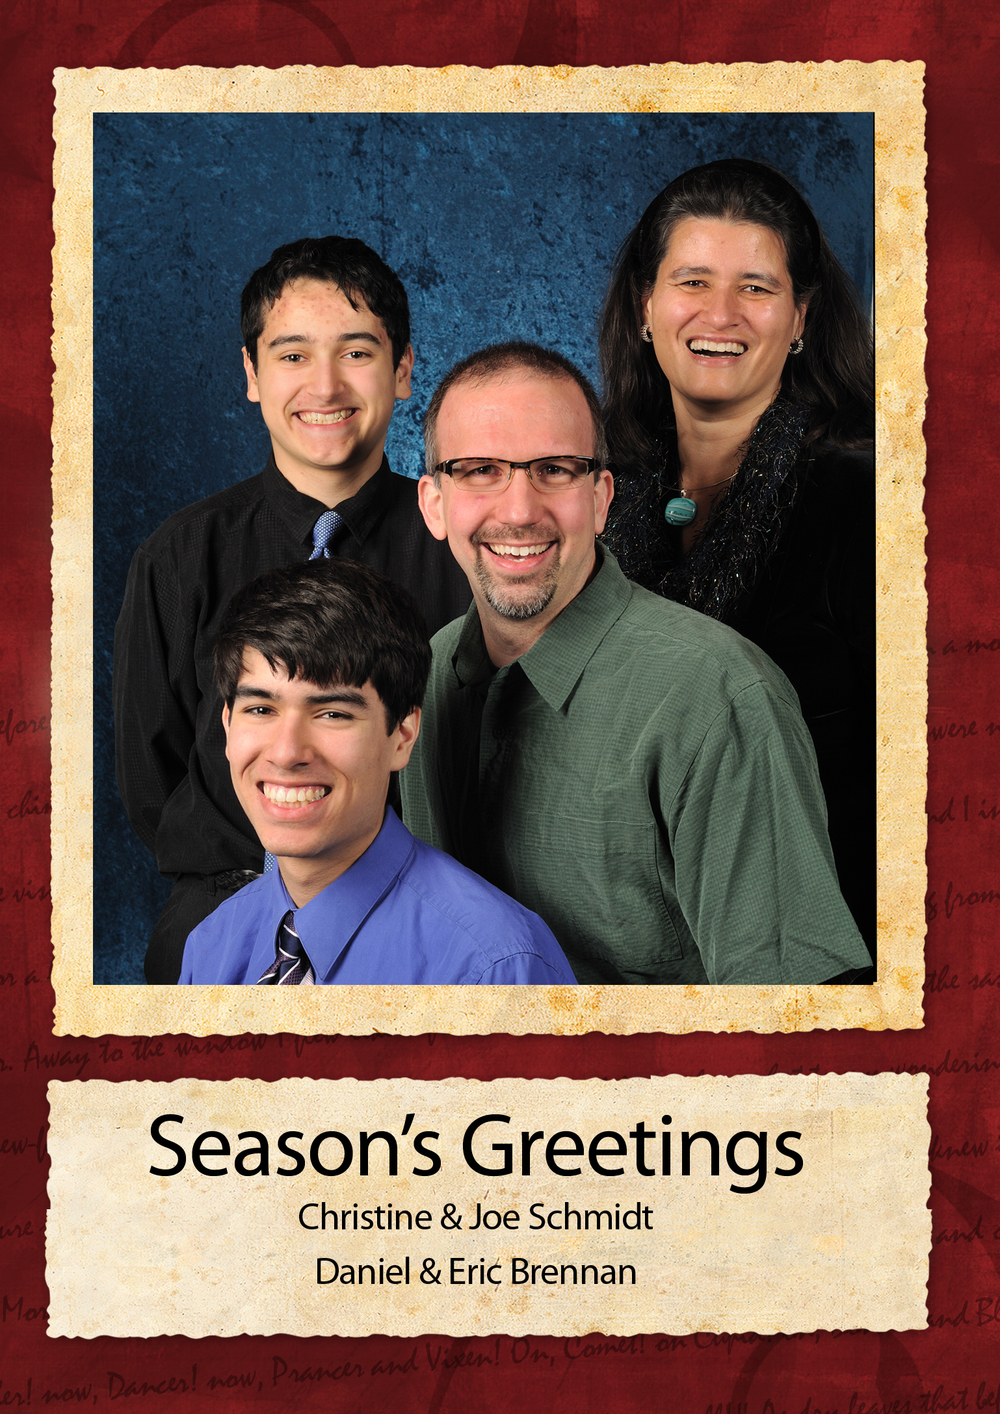 2009 Holiday Card - Front